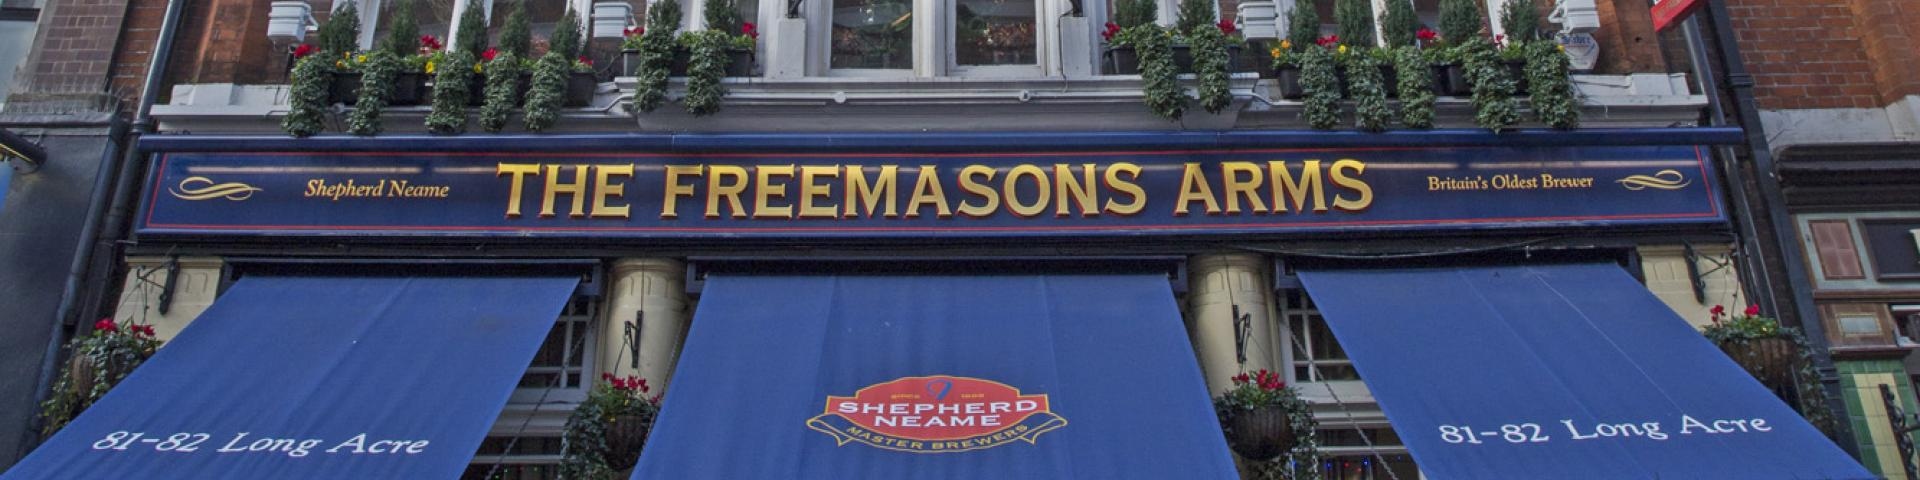 The Freemasons Arms Covent Garden